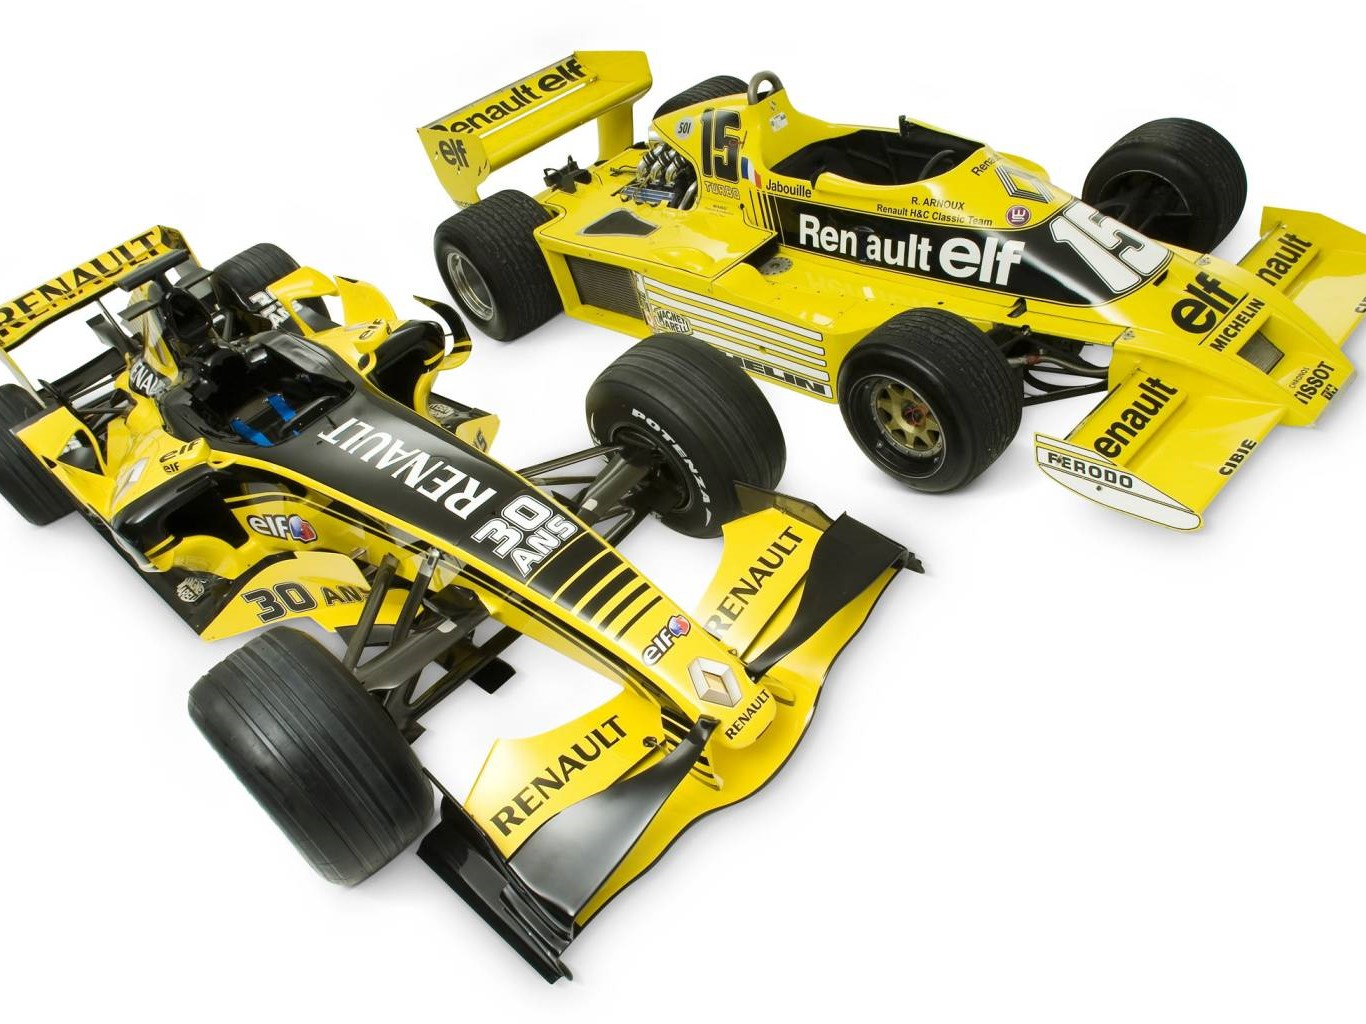 http://superf1.be/spip/IMG/jpg/renault_30_years_2_.jpg